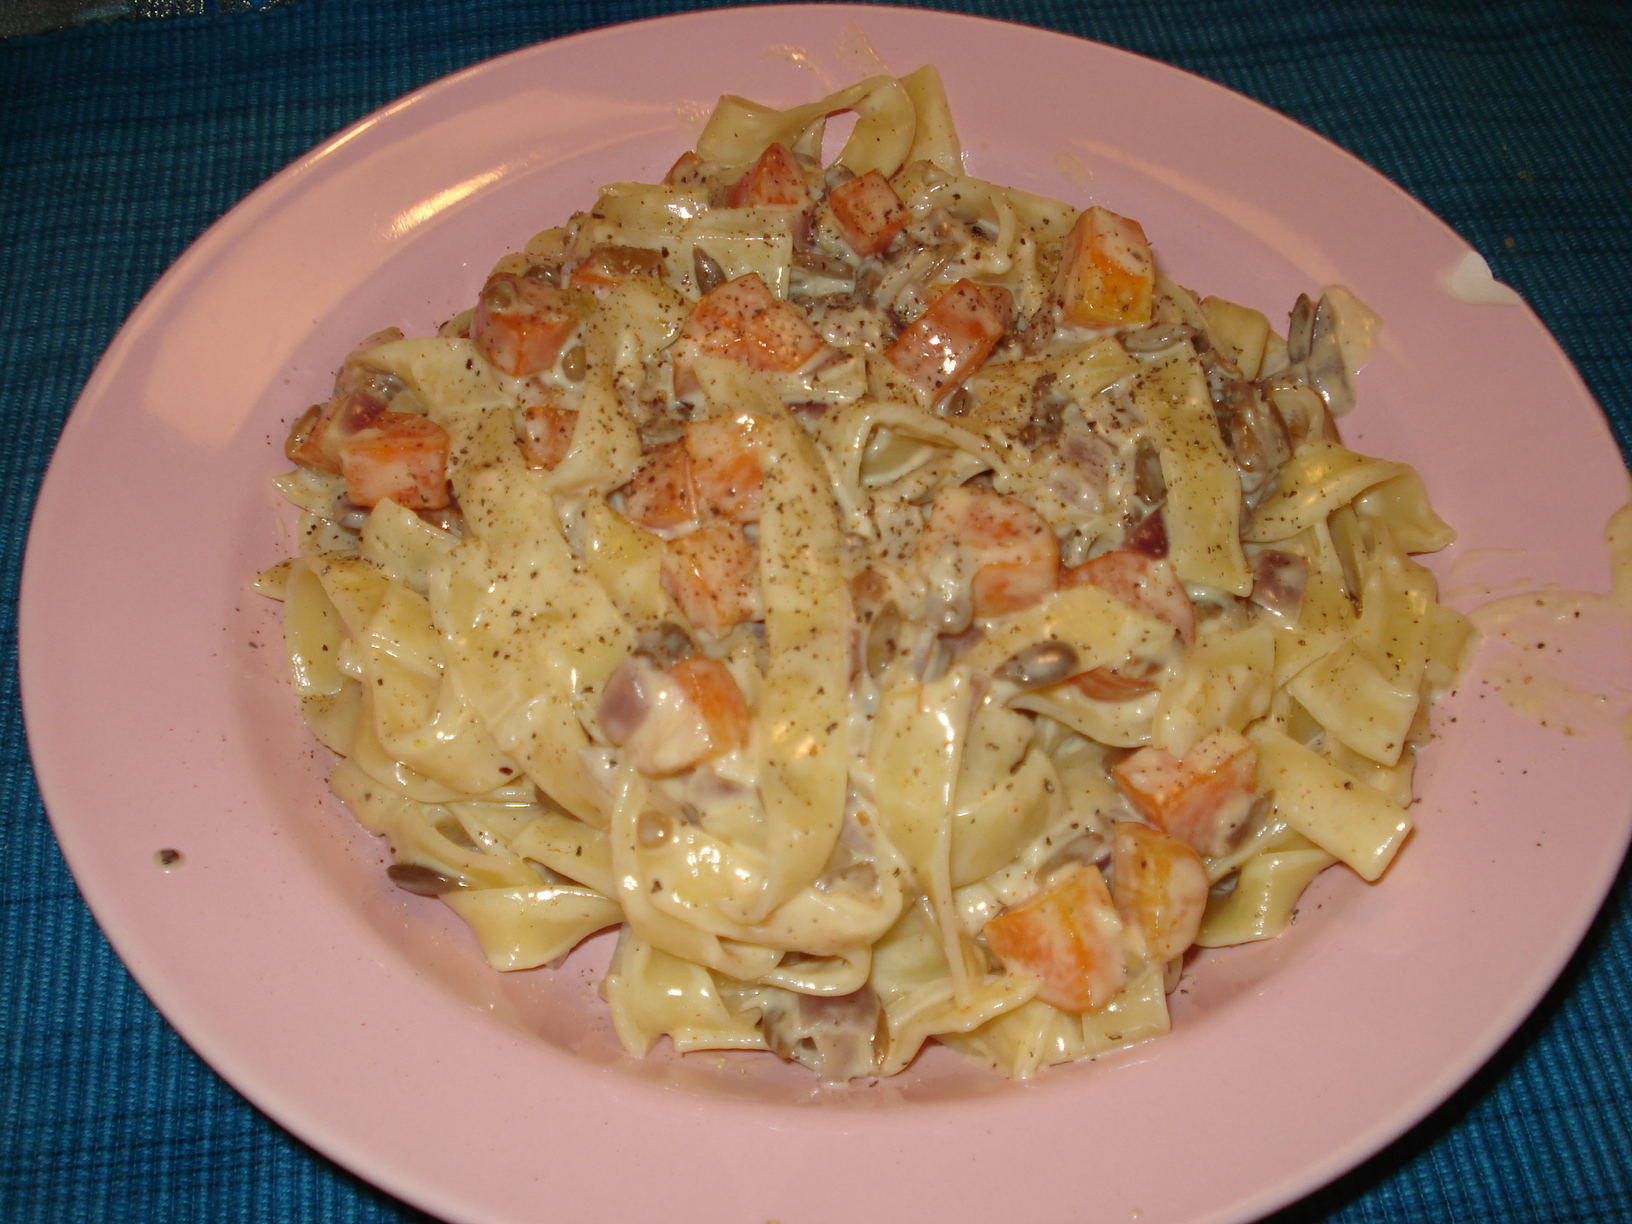 Pasta in a cheese sauce with carrots and sunflower seeds